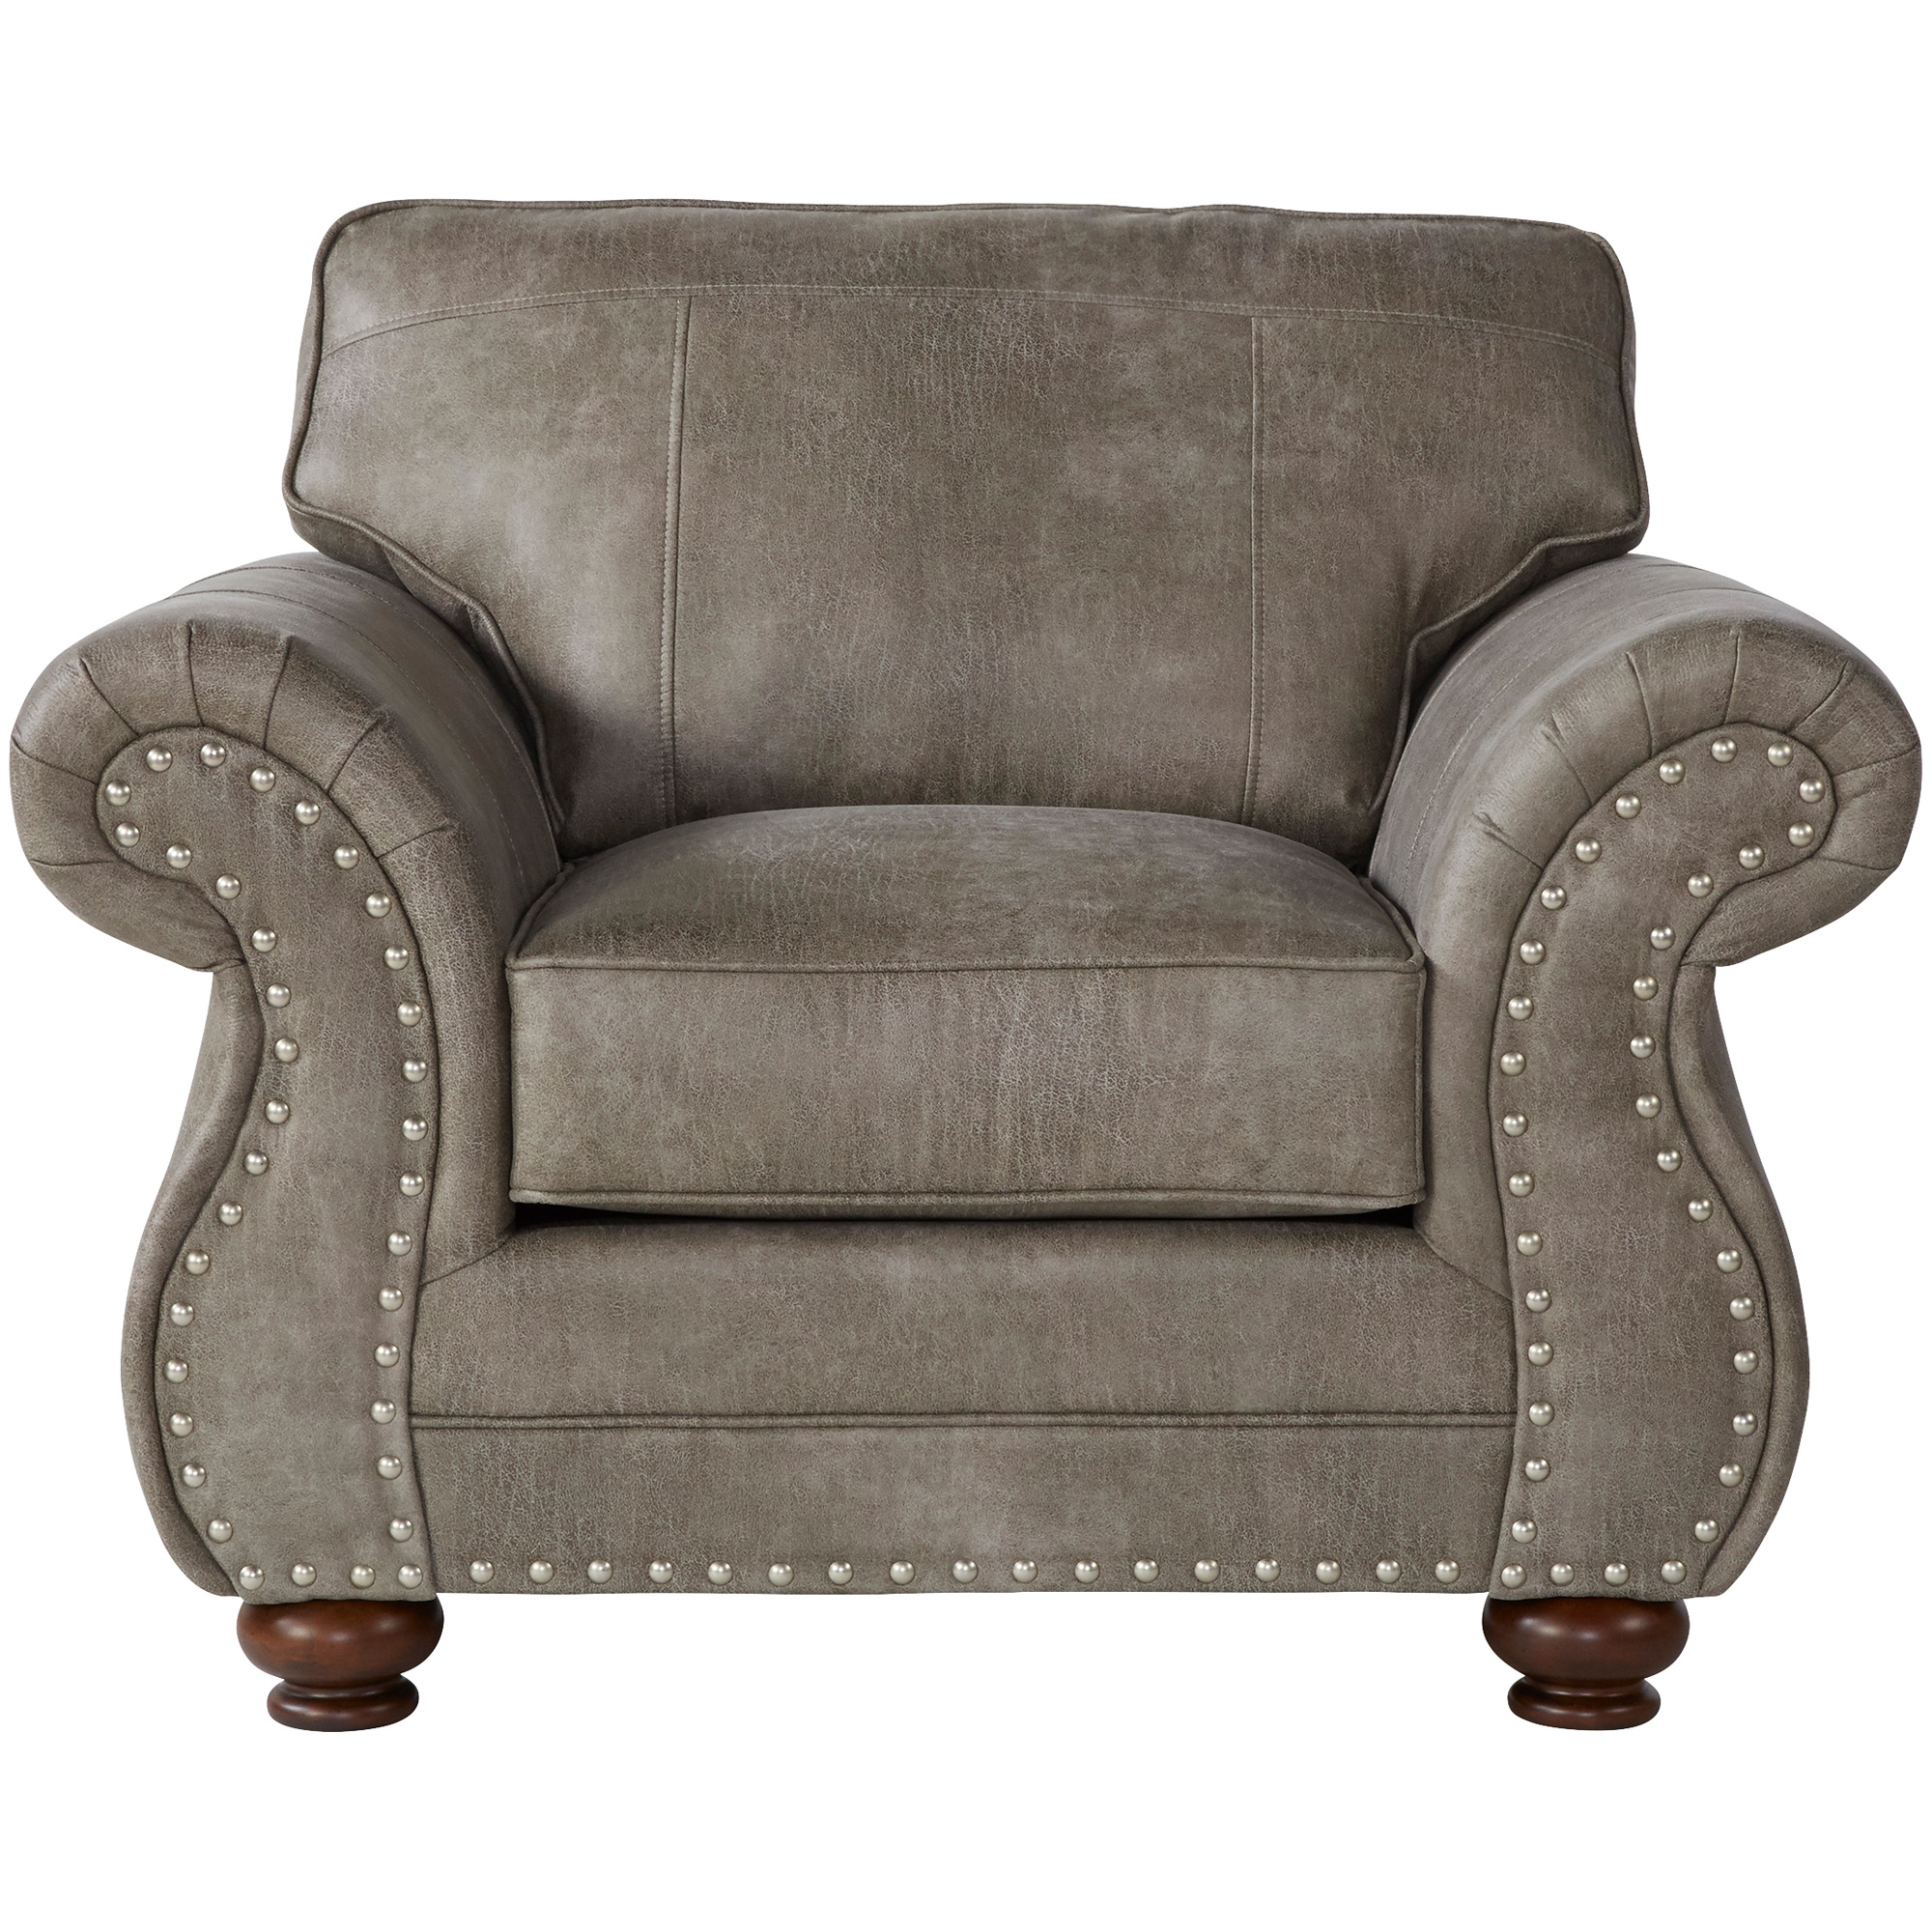 Serta Upholstery By Hughes Furniture | Bester Golitha Mica Chair